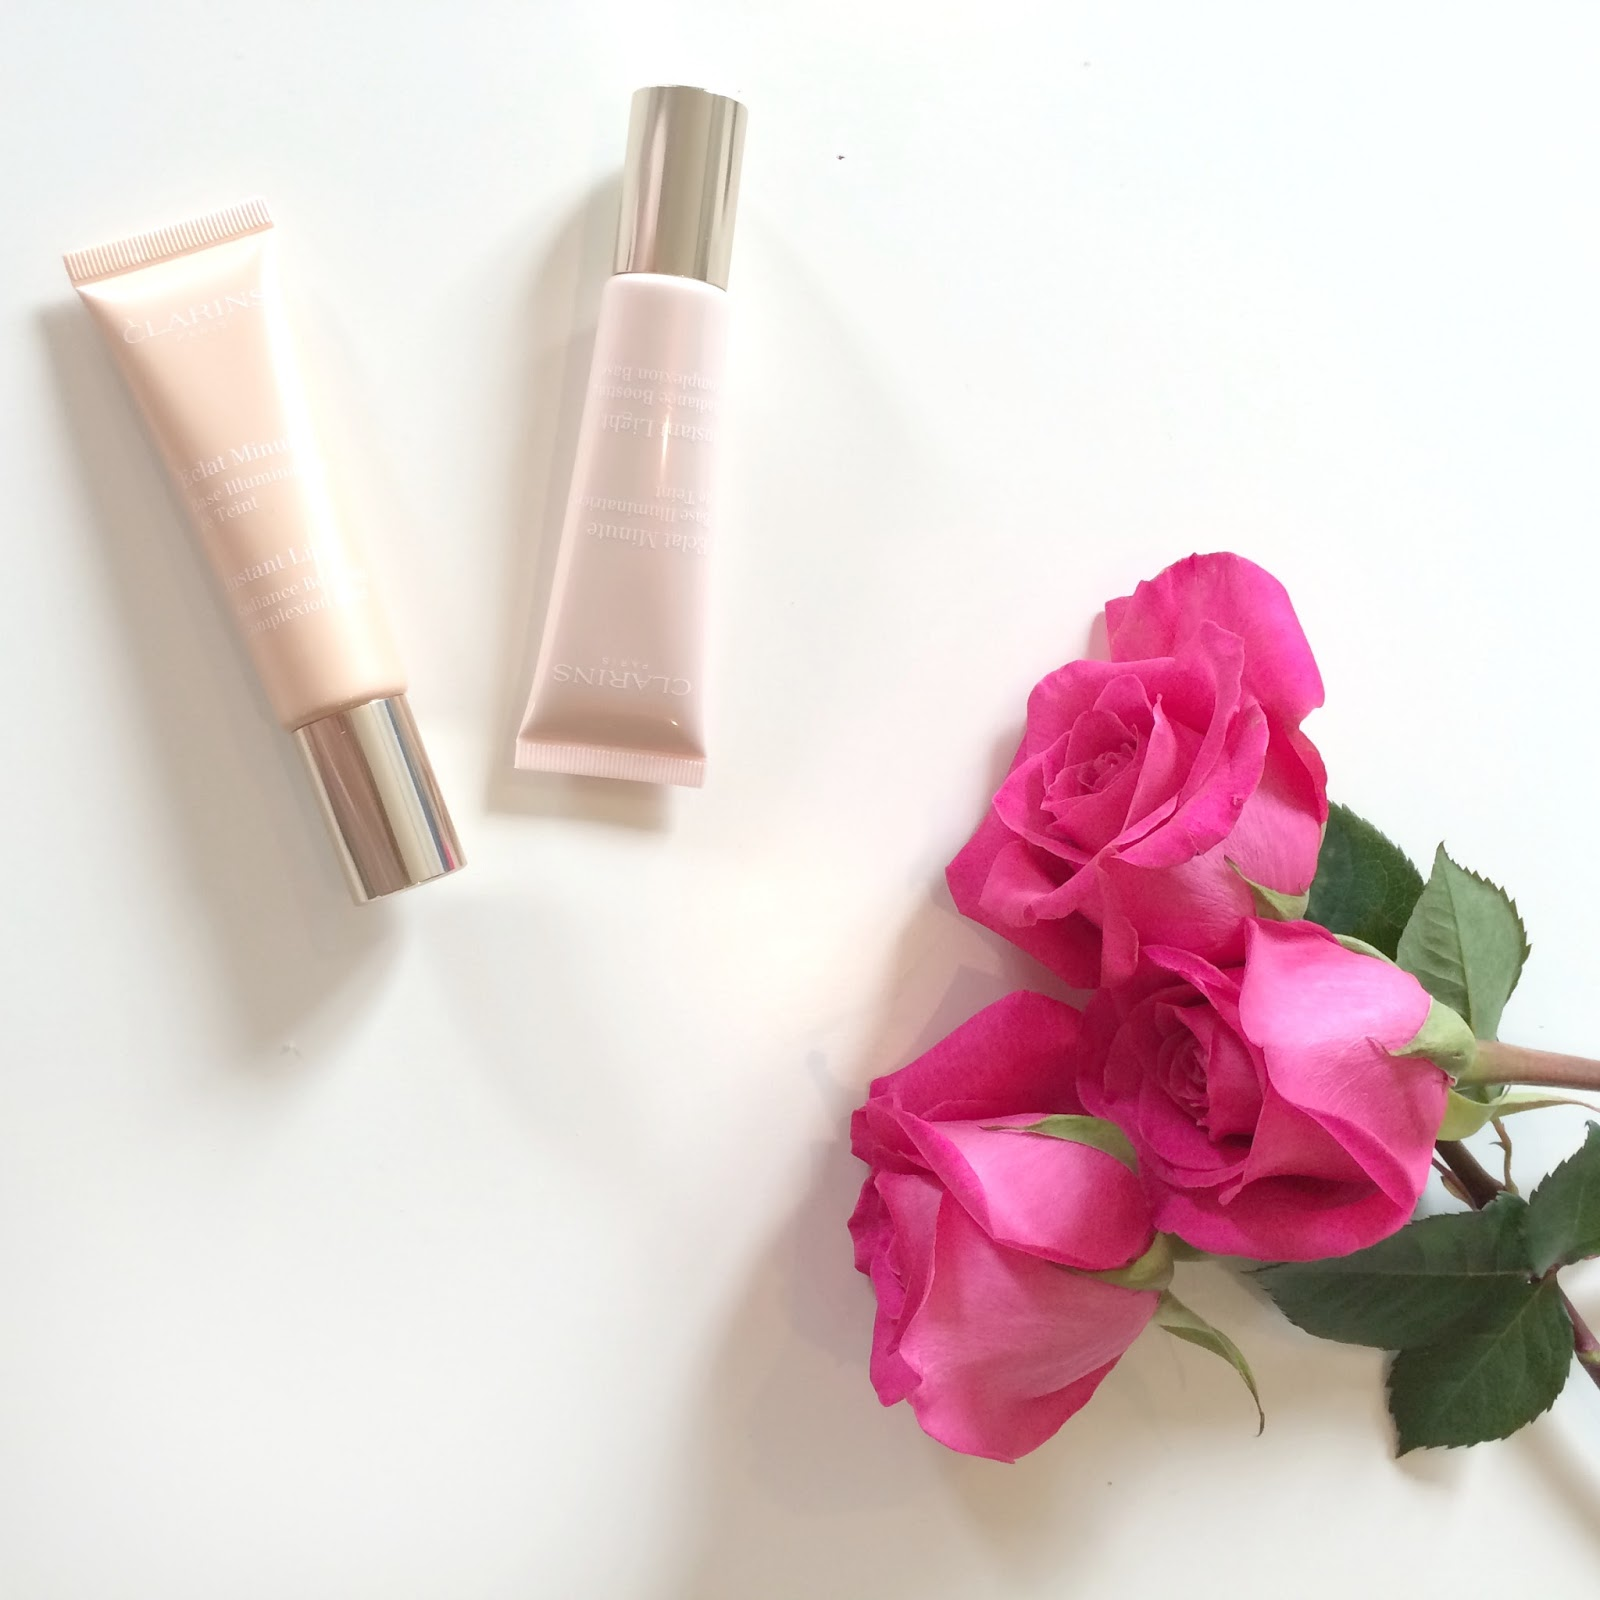 clarins illuminating base